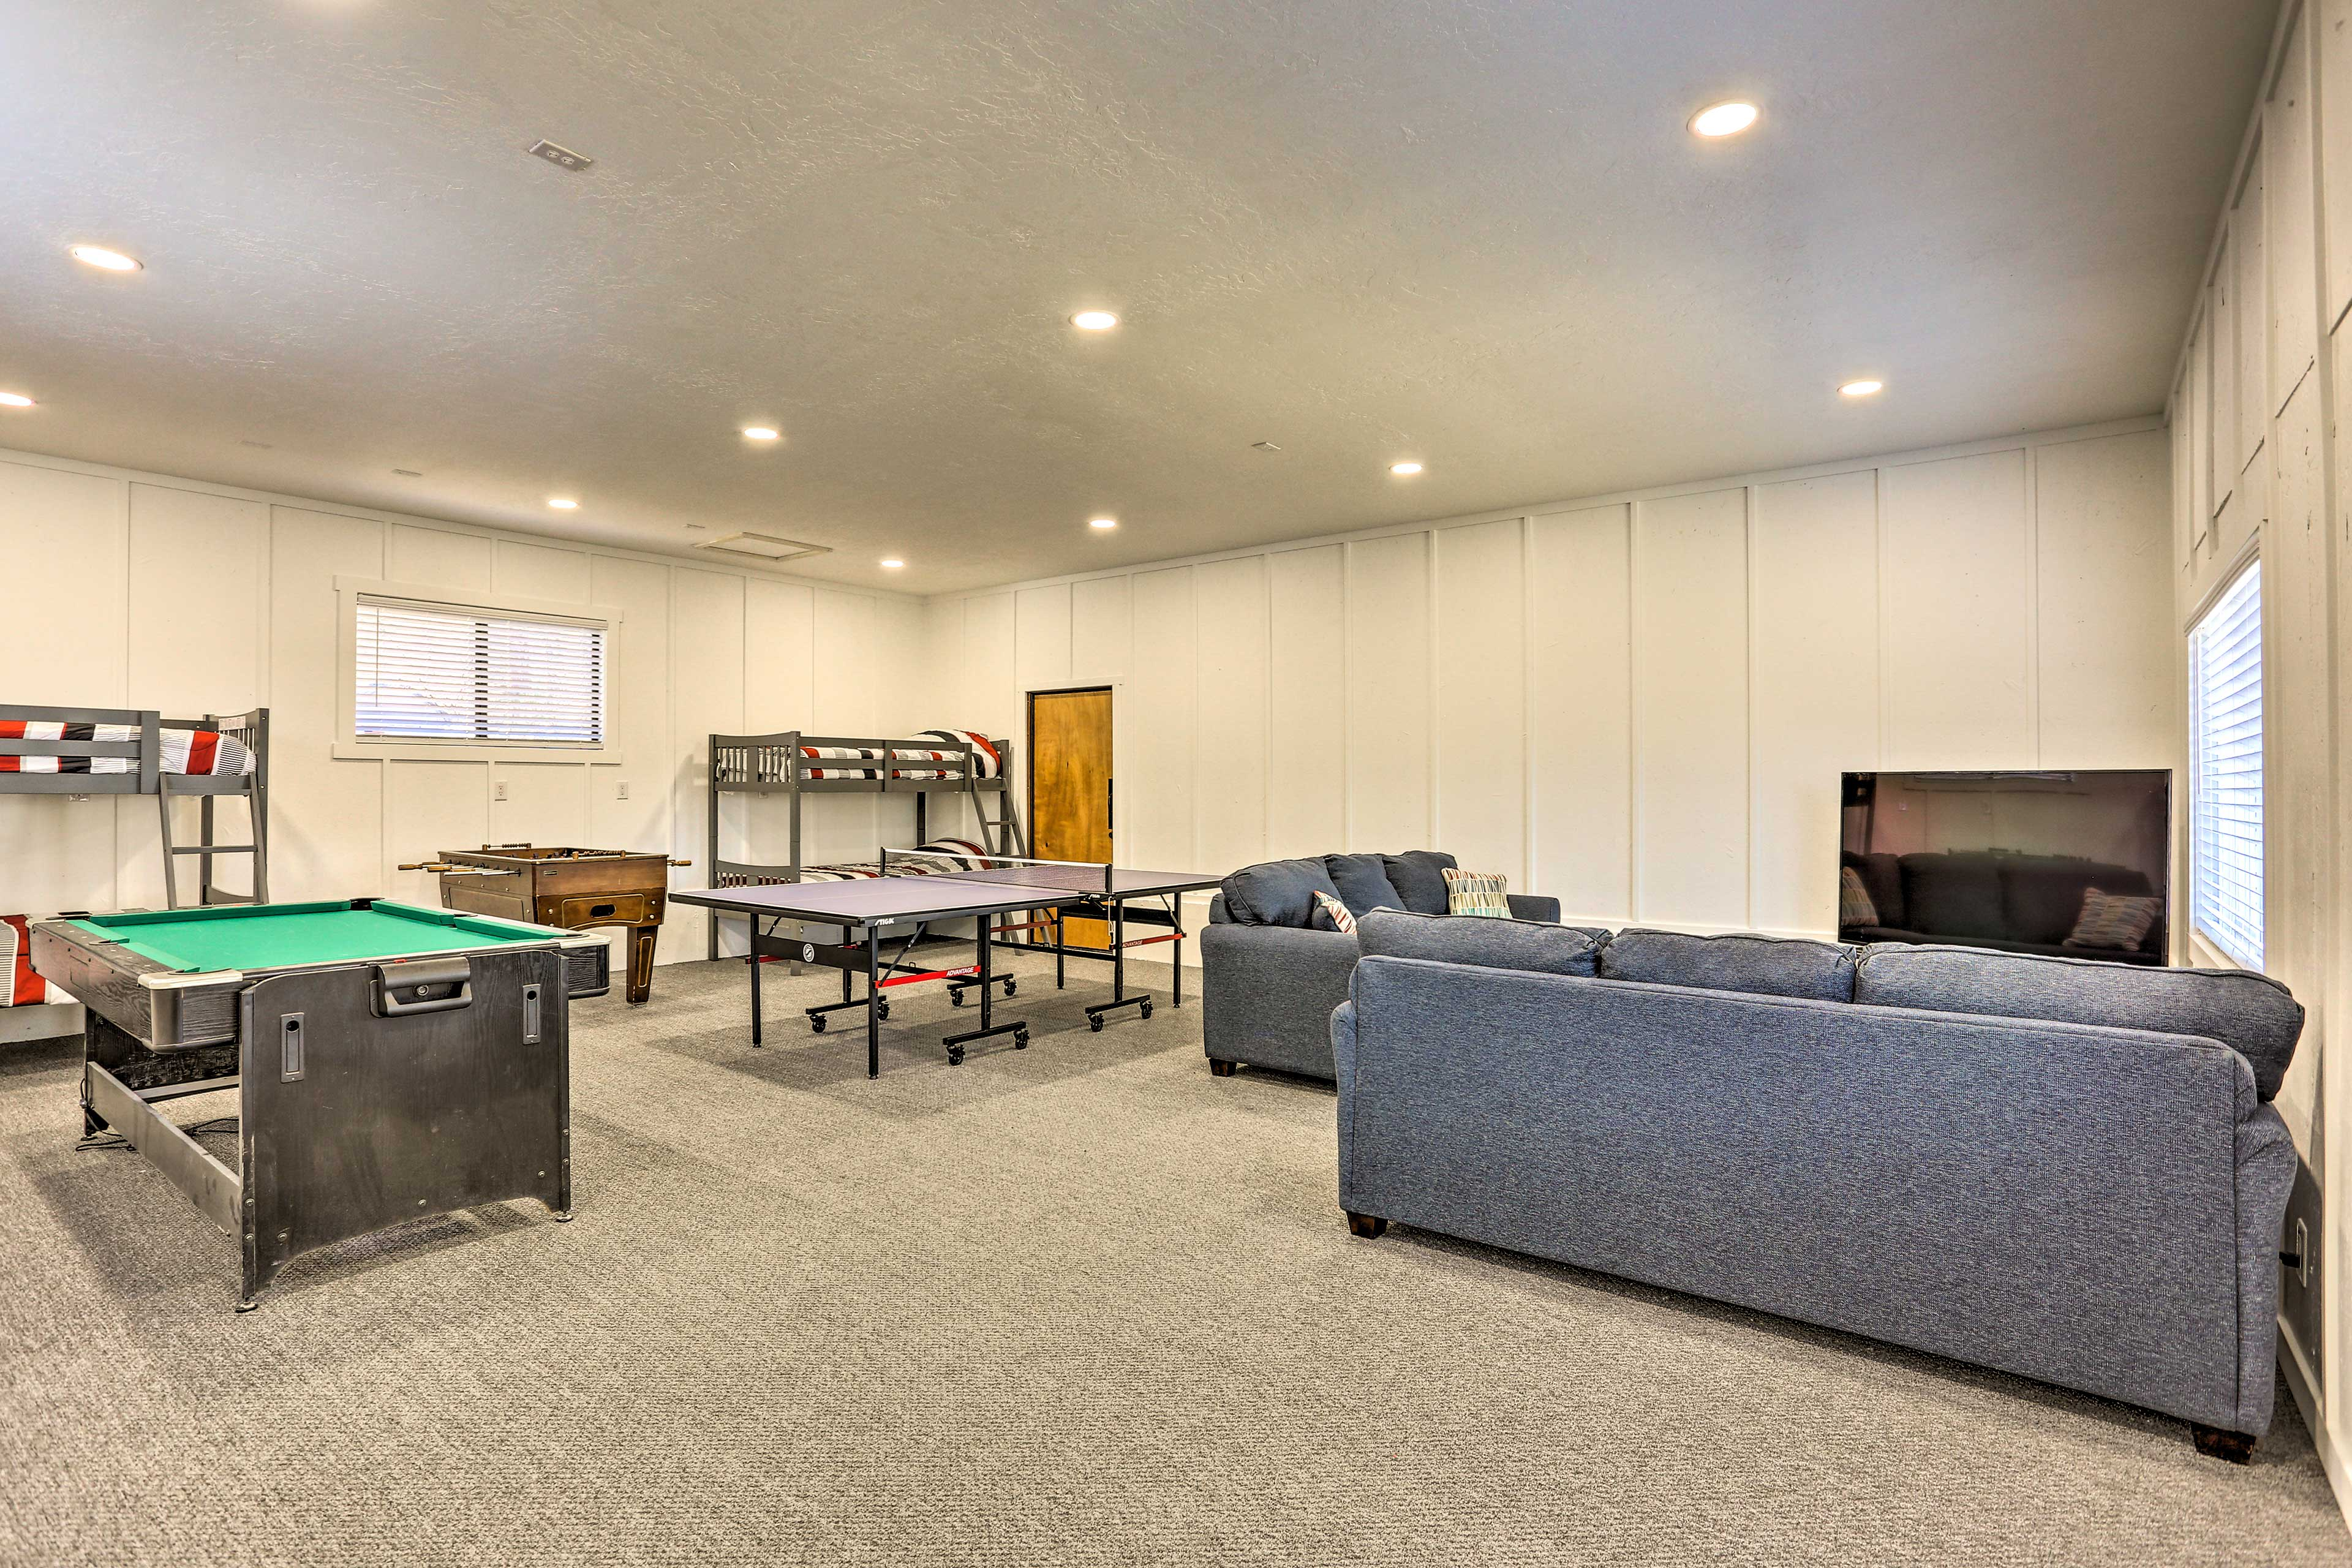 The game room features 2 twin bunk beds and 2 sleeper sofas.